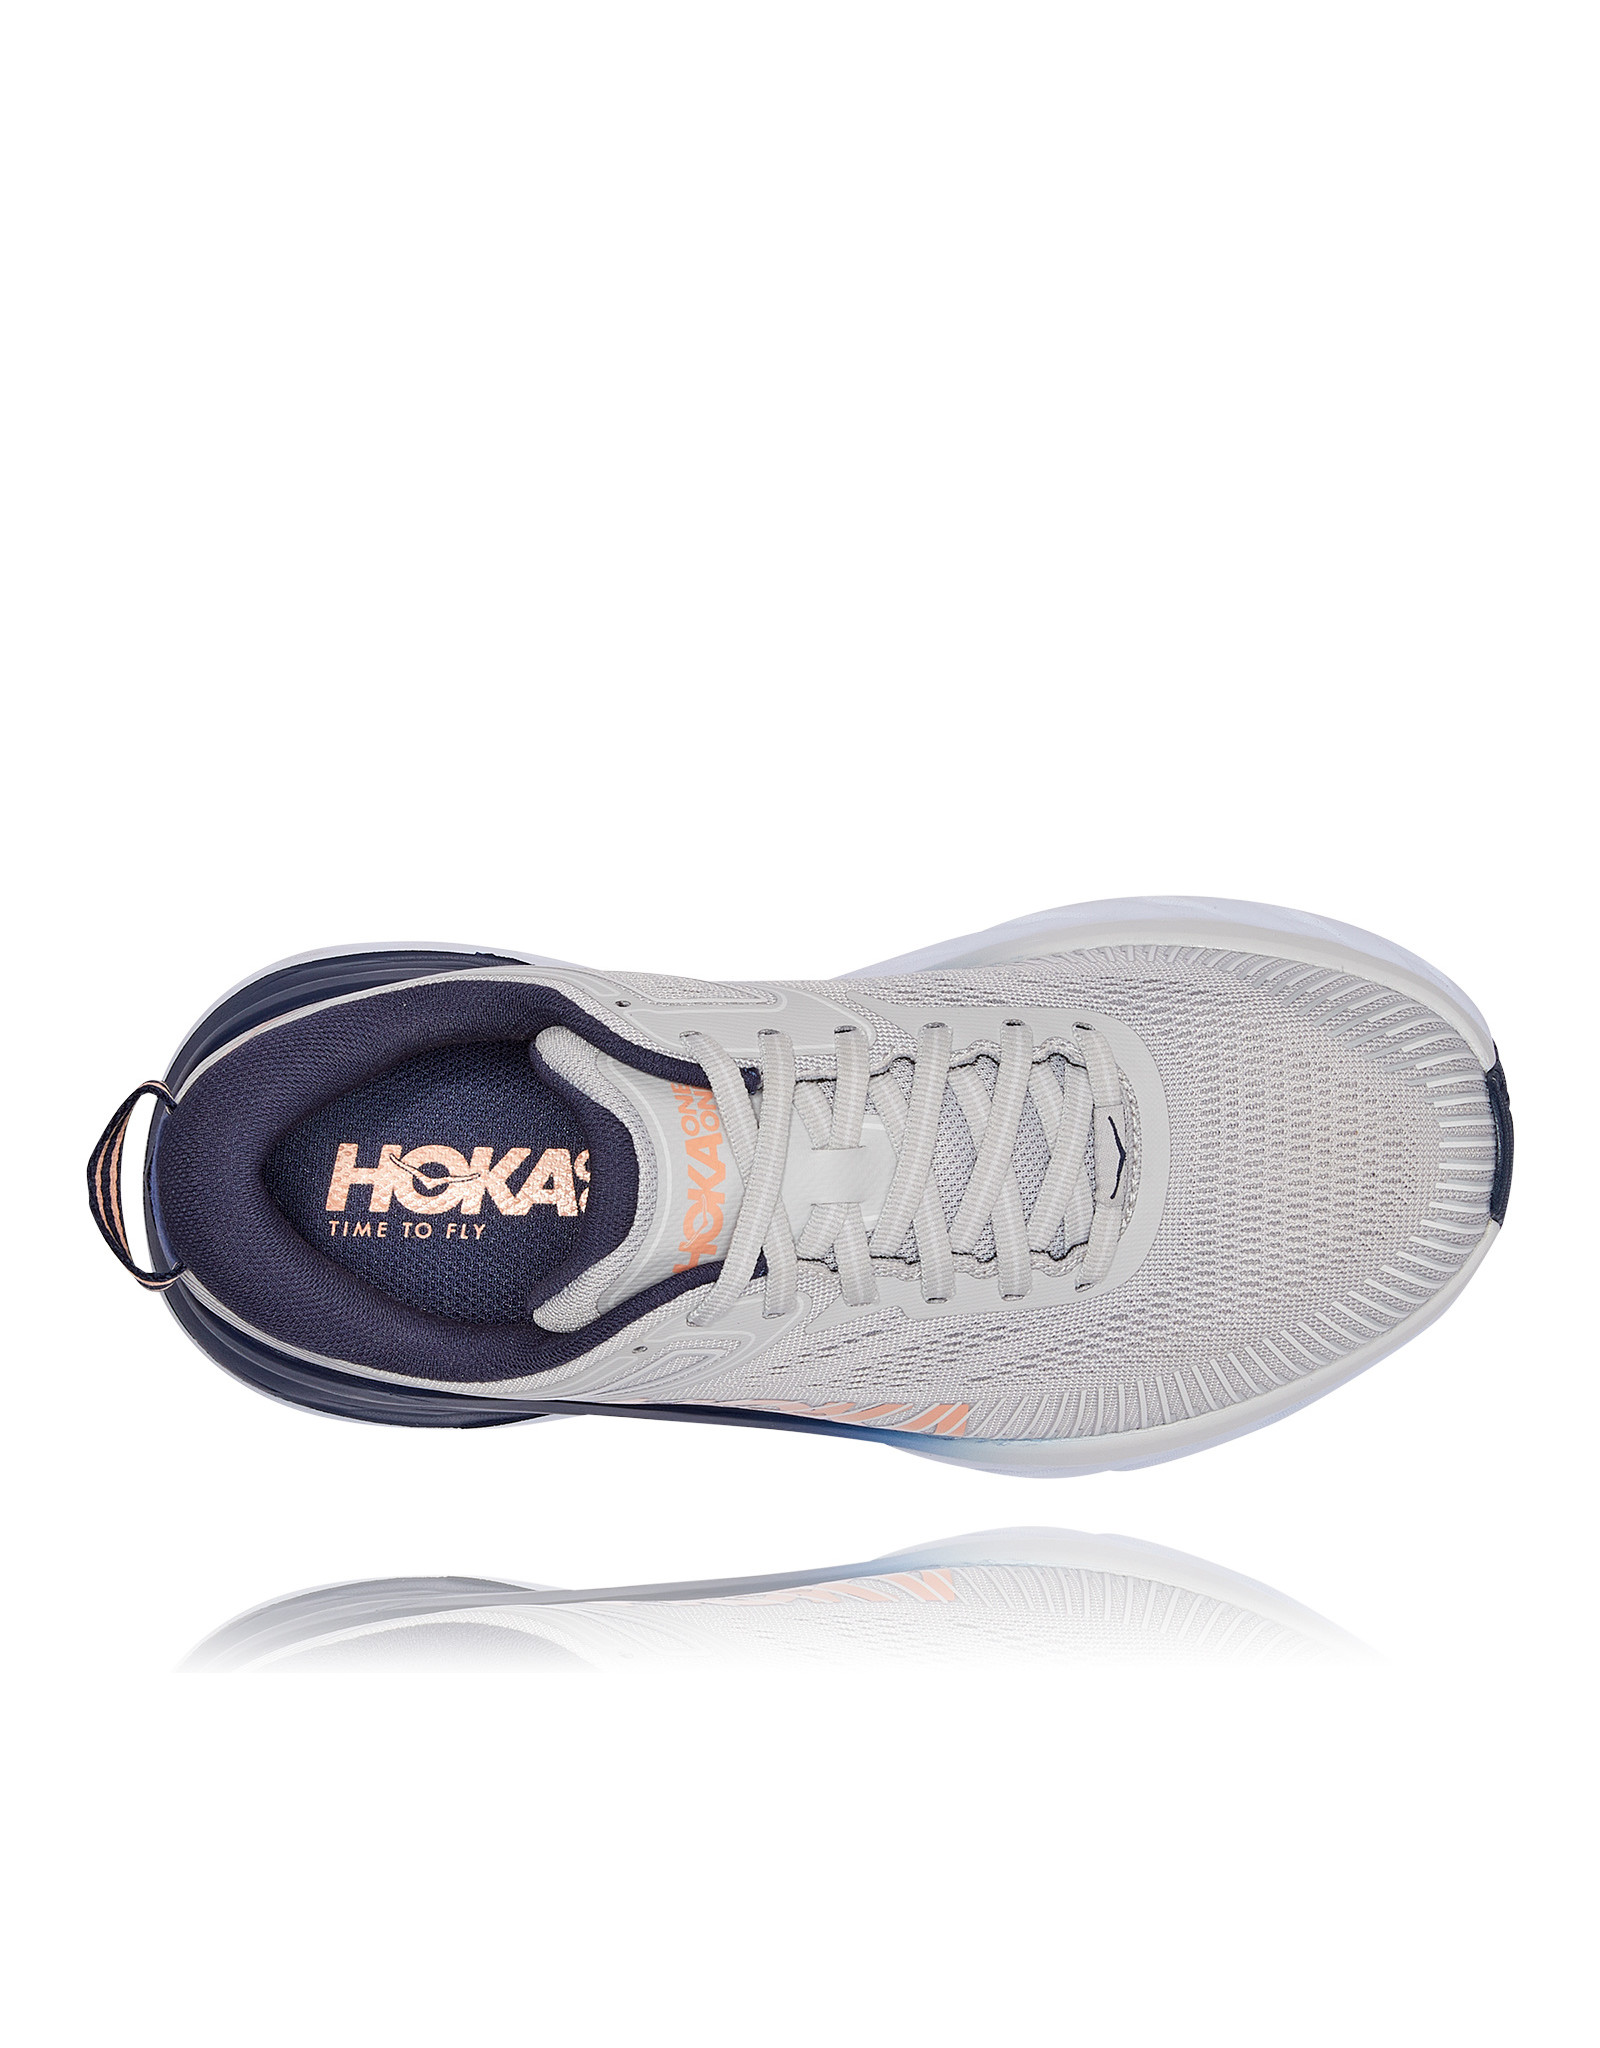 HOKA ONE ONE WOMEN'S BONDI 7-LUNAR ROCK / BLACK IRIS